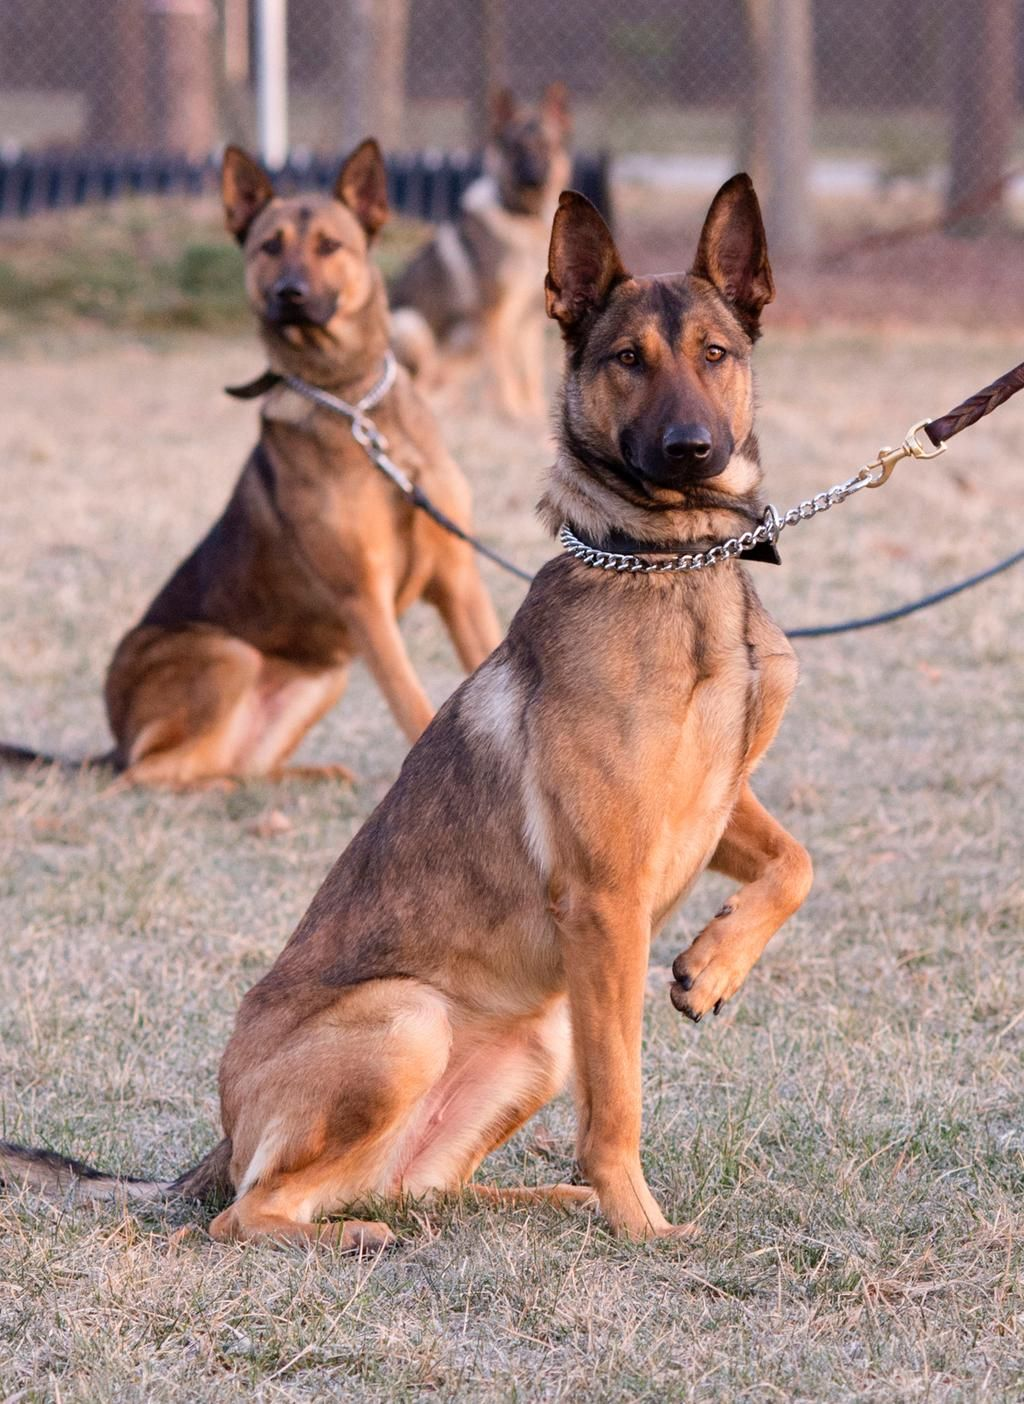 USSS began using Belgian Malinois for operational purposes in 1984 and they remain an integral part of the Agency.